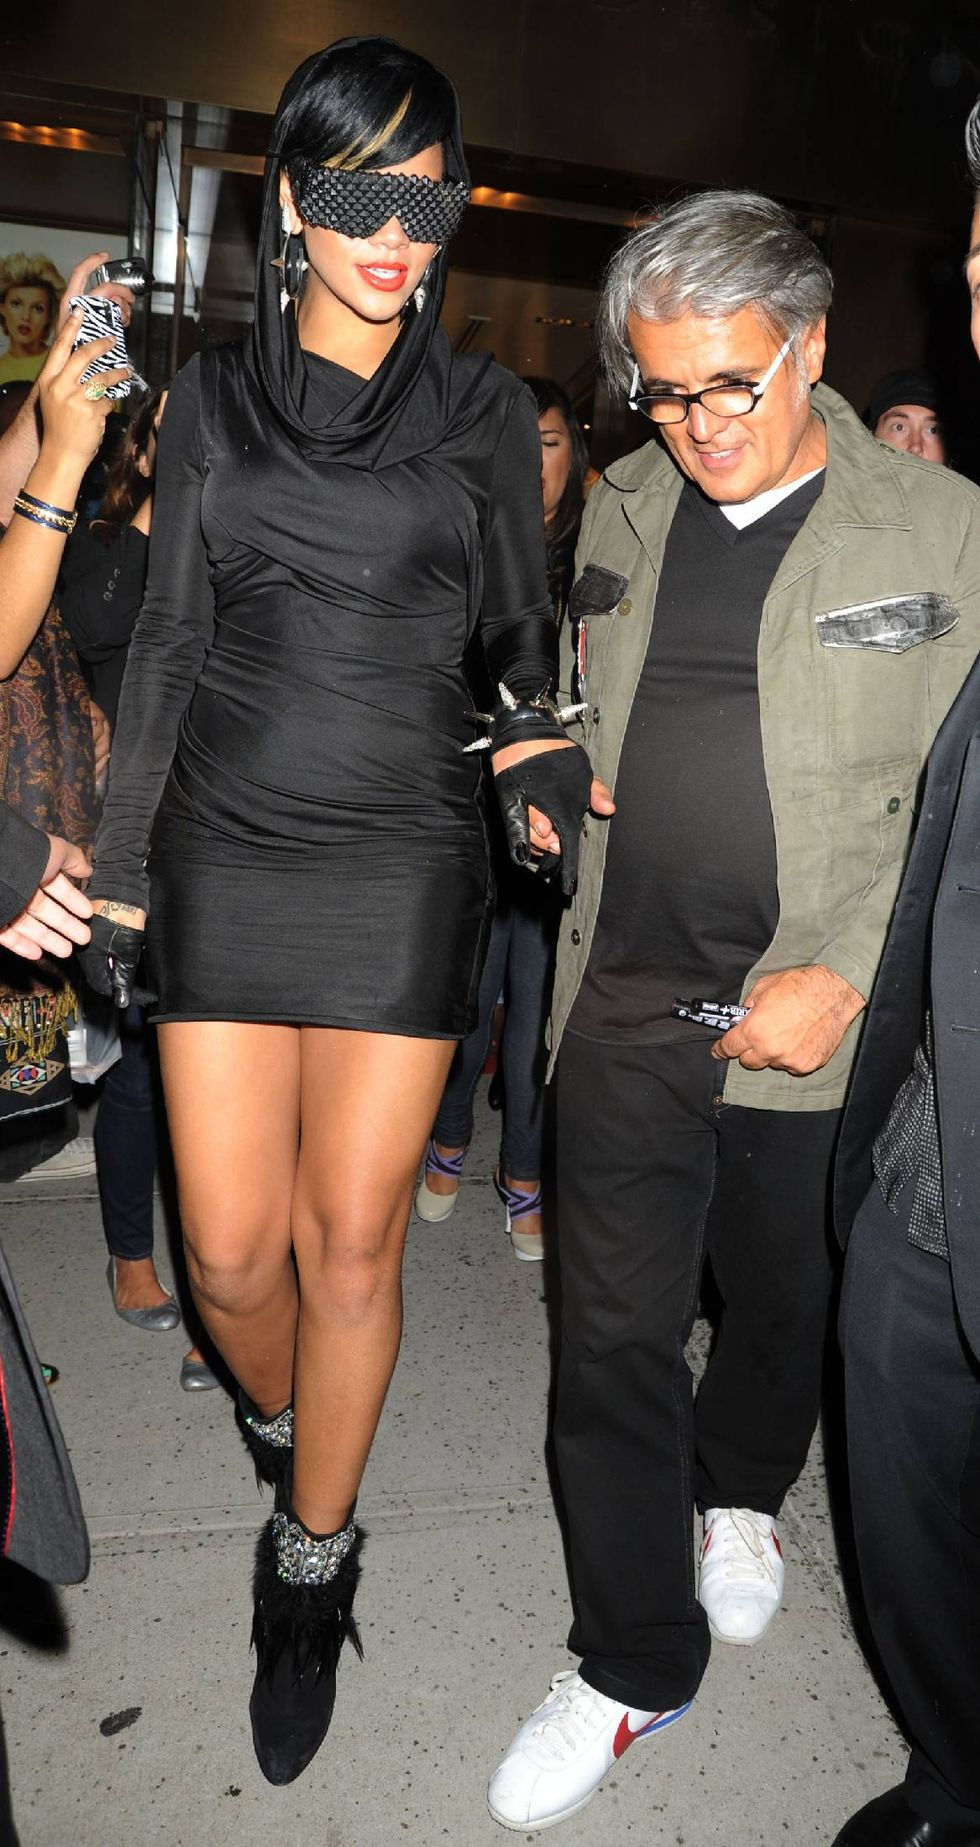 rihanna-fashions-night-out-event-in-new-york-01